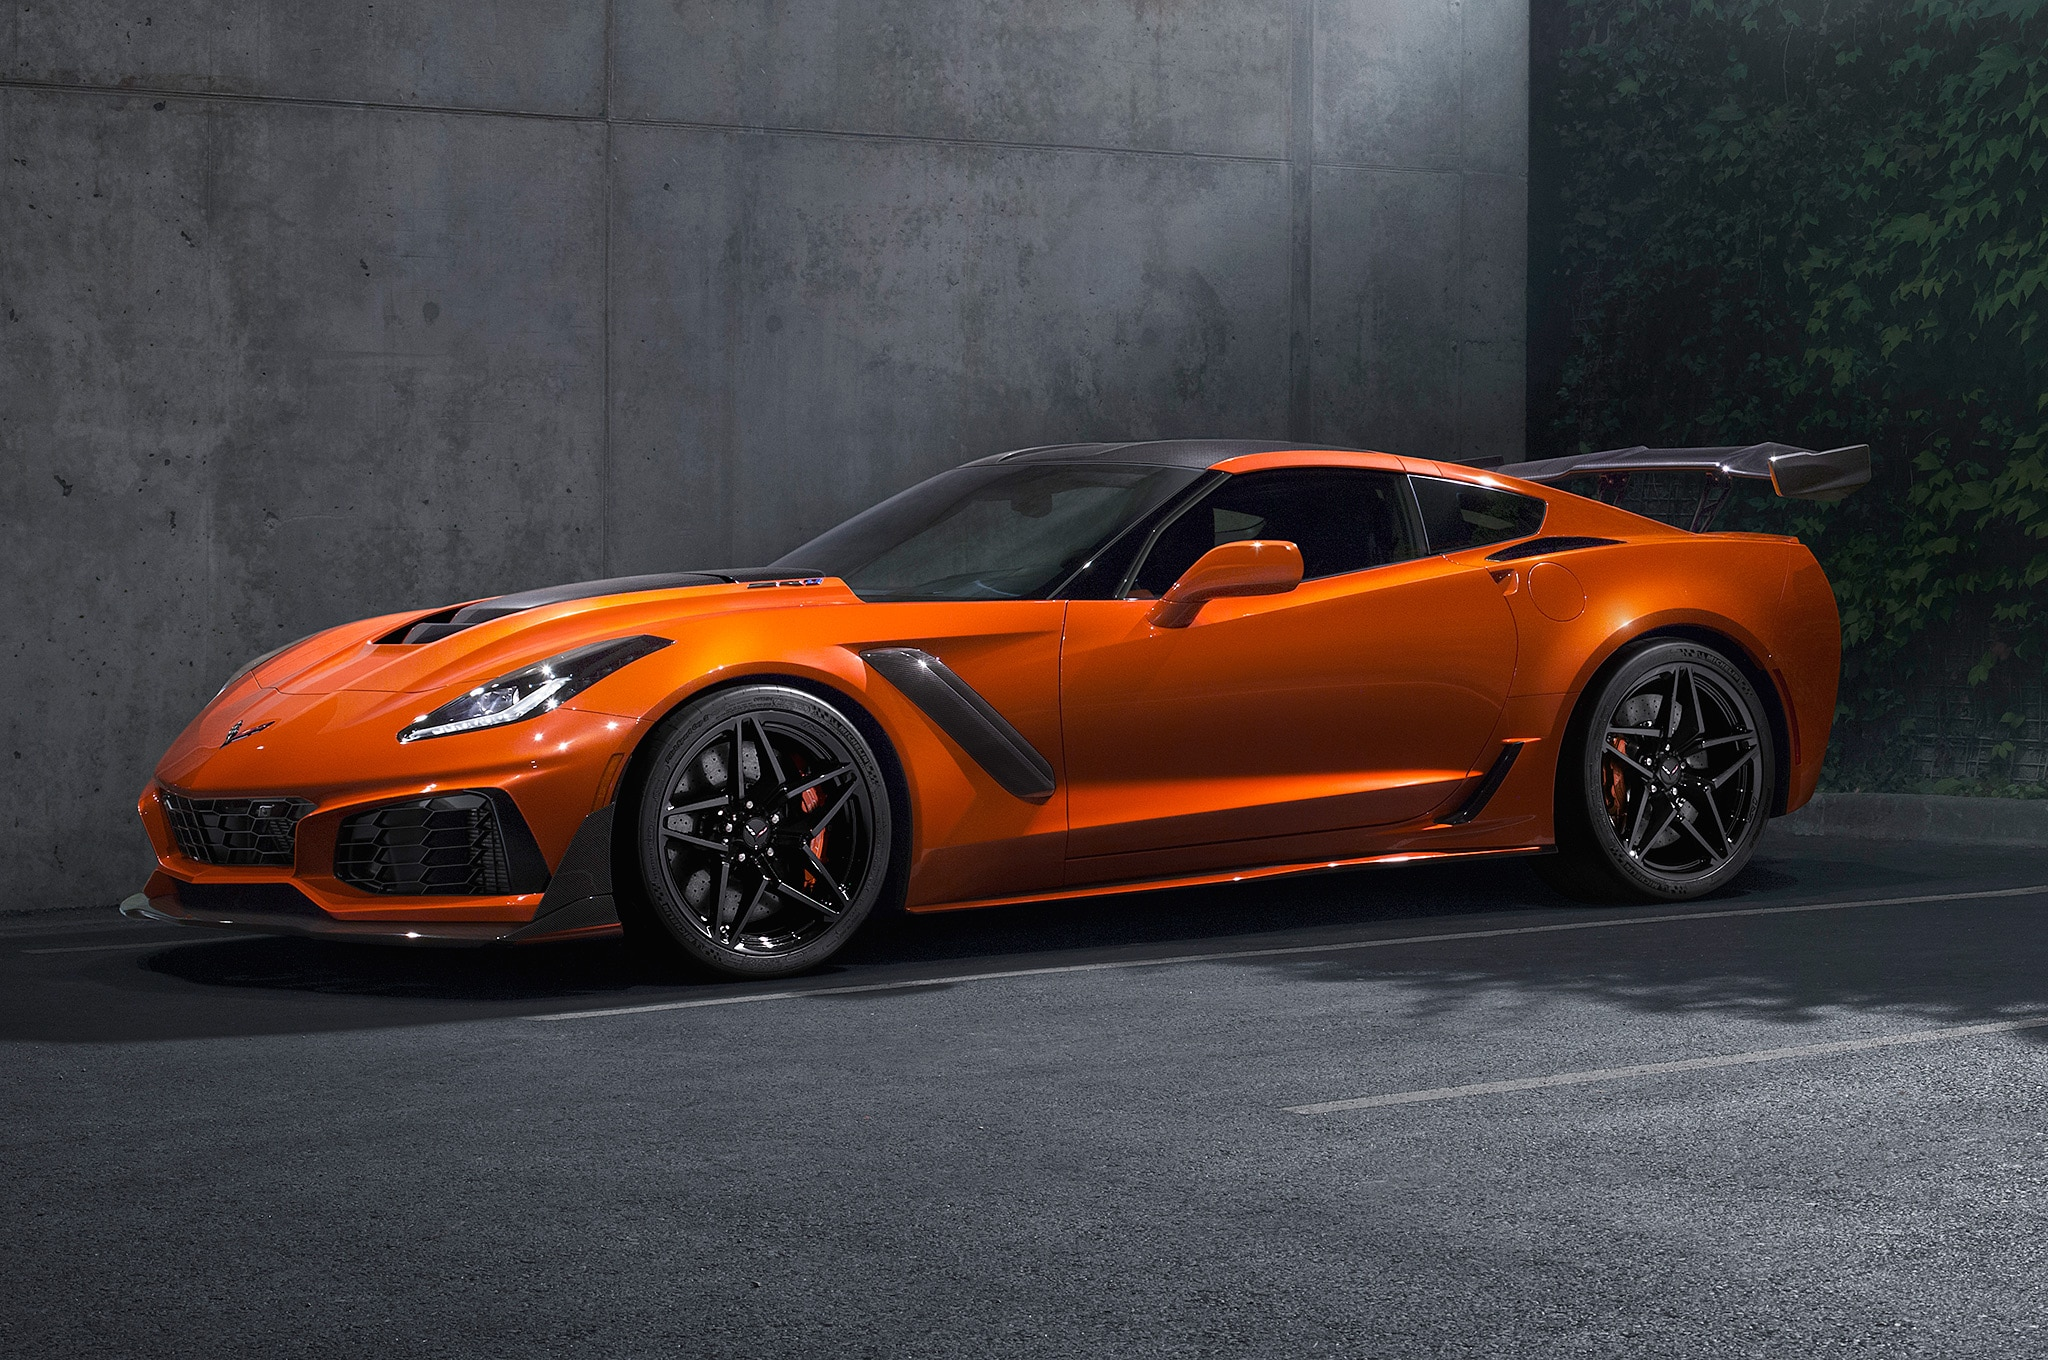 Chevrolet Corvette ZR1: Here It Is, In All its 755-HP Glory